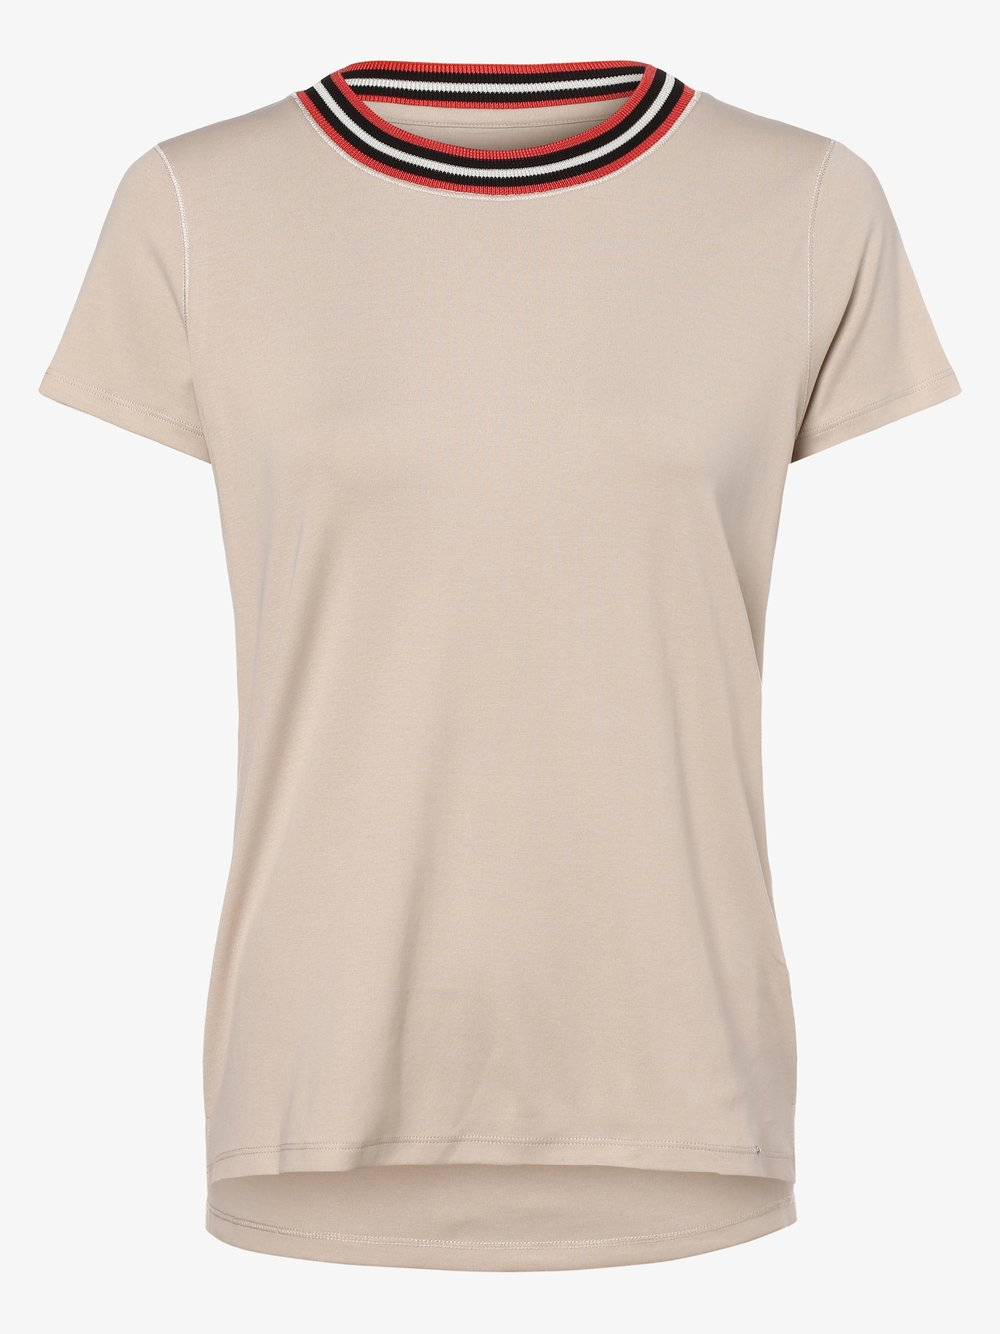 Marc Cain Collections - T-shirt damski, beżowy